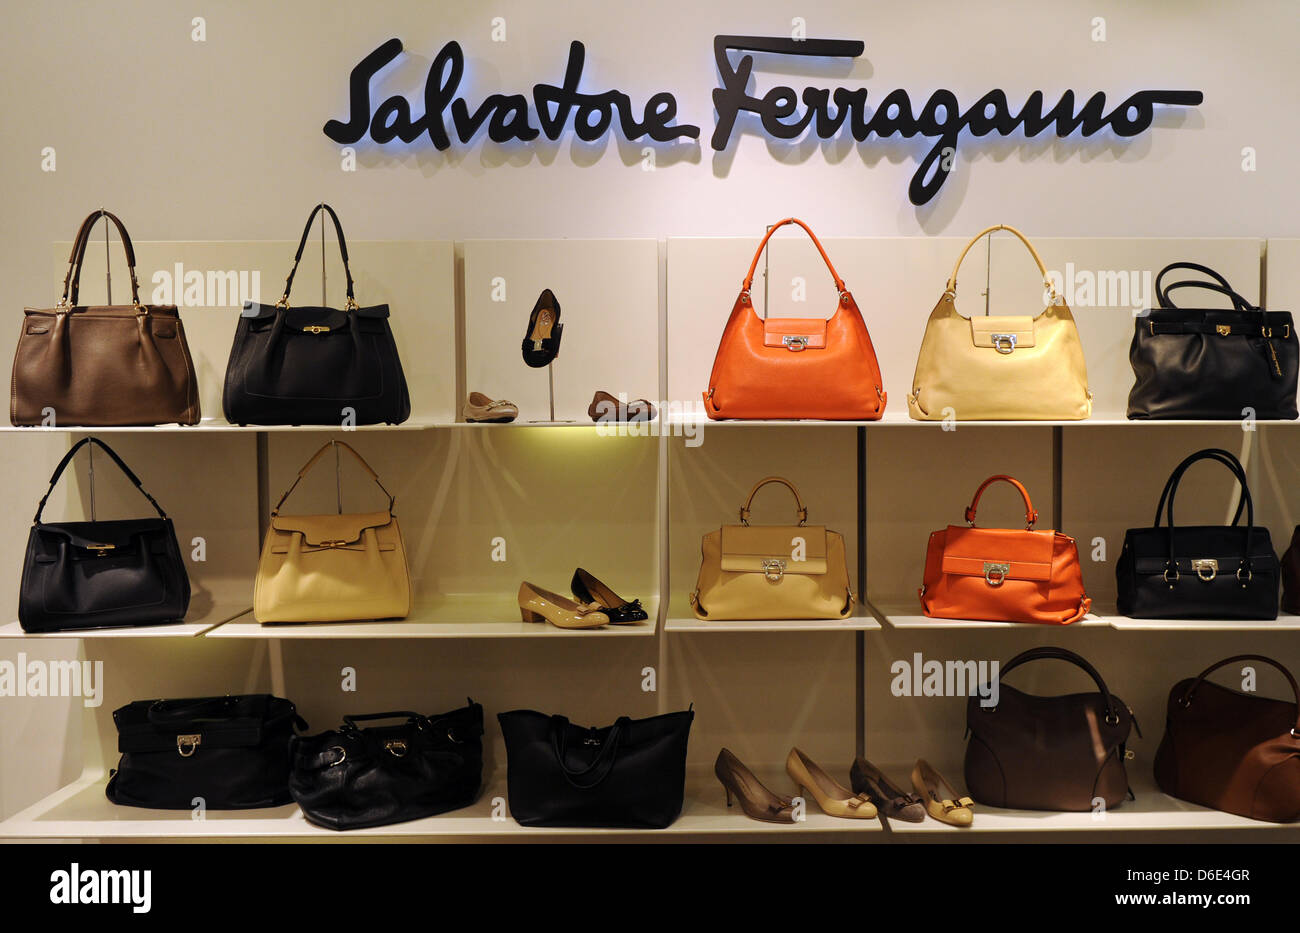 a6acf1b40 Handbags and shoes of luxury brand Salvatore Ferragamo, pictured on 18  January 2012 in Berlin